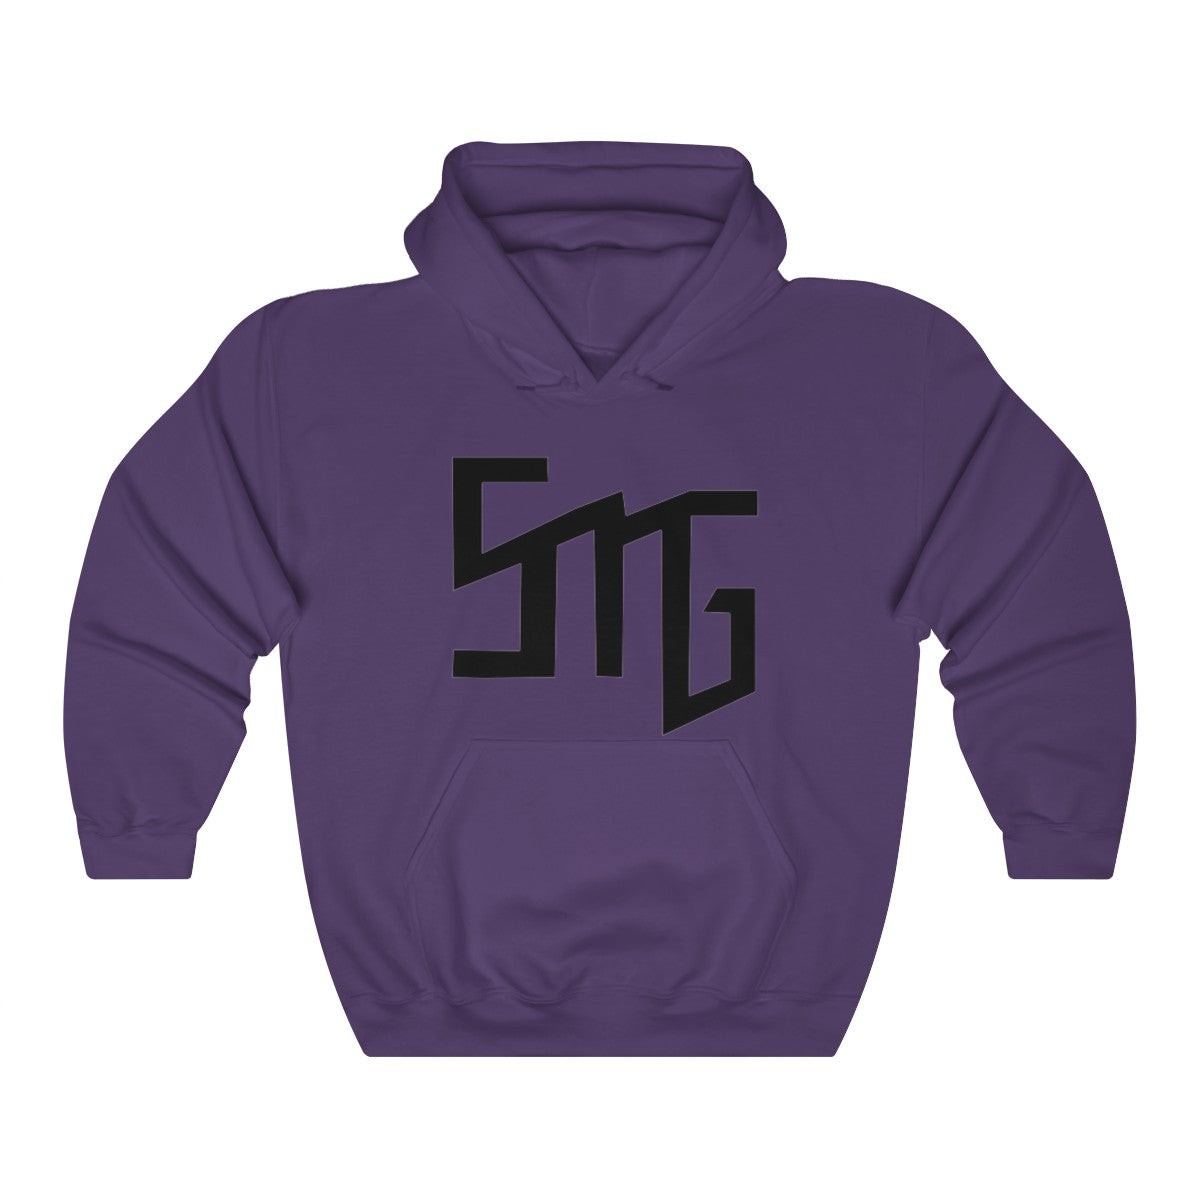 Elly Elz SMG Syck Music Group Hooded Sweatshirt